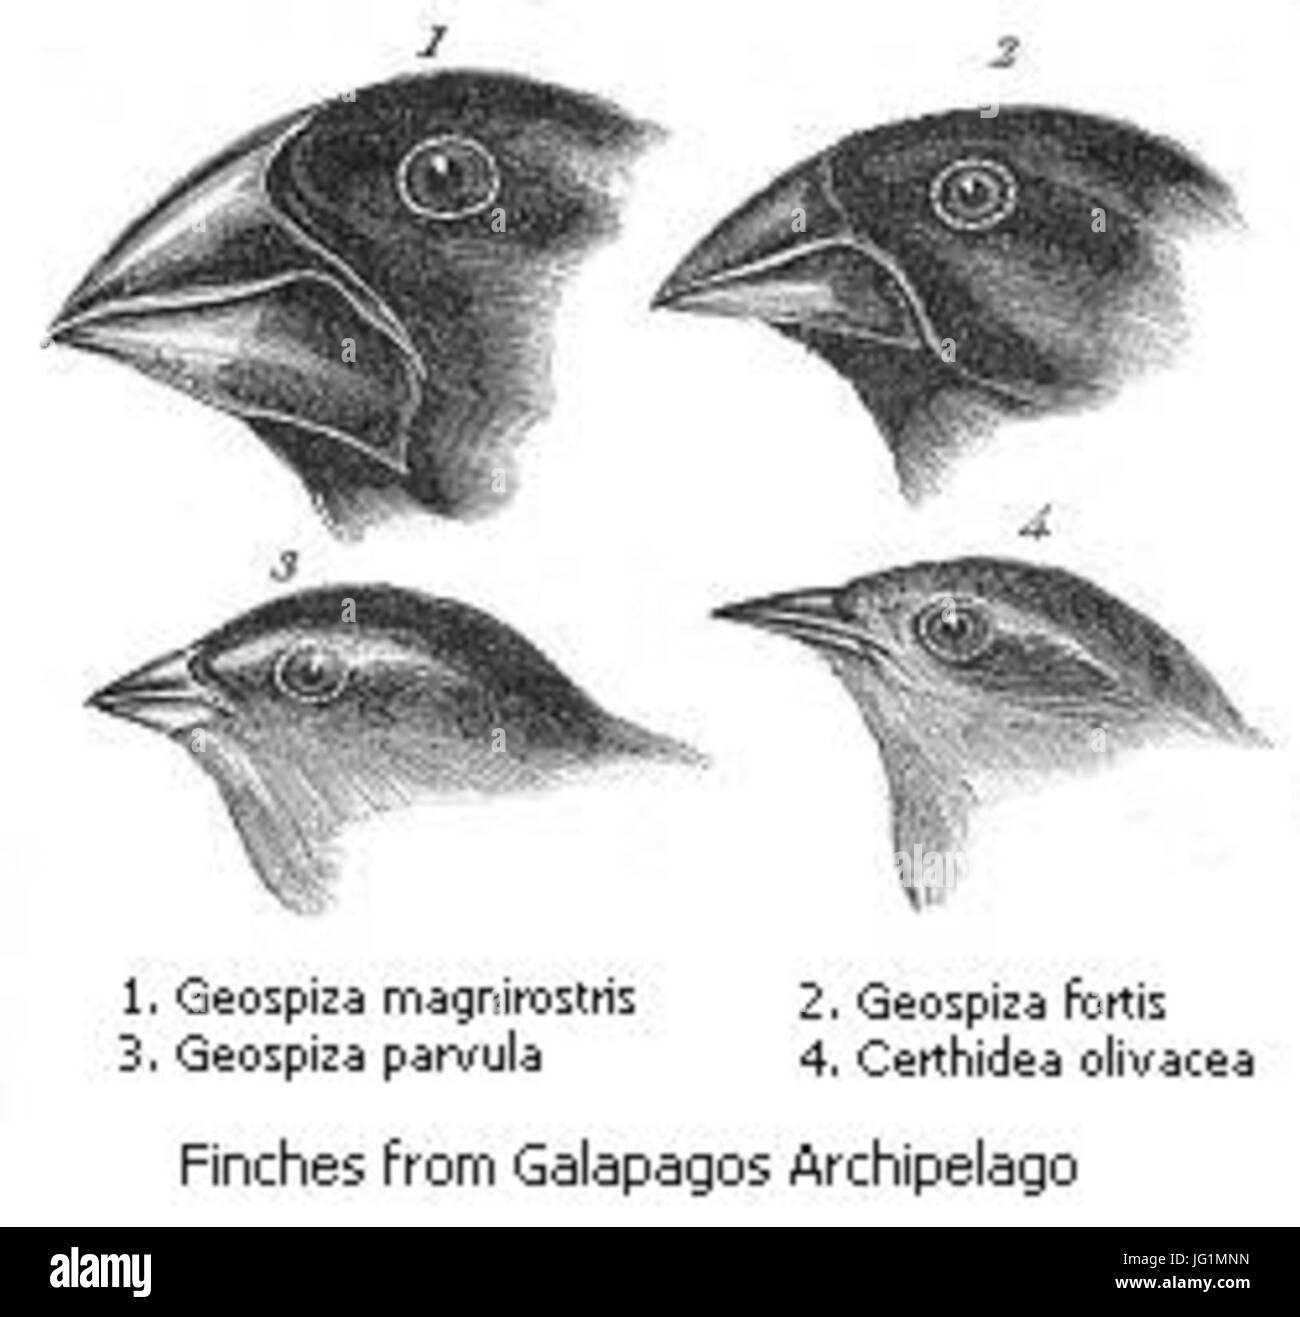 Darwin s finches - Stock Image